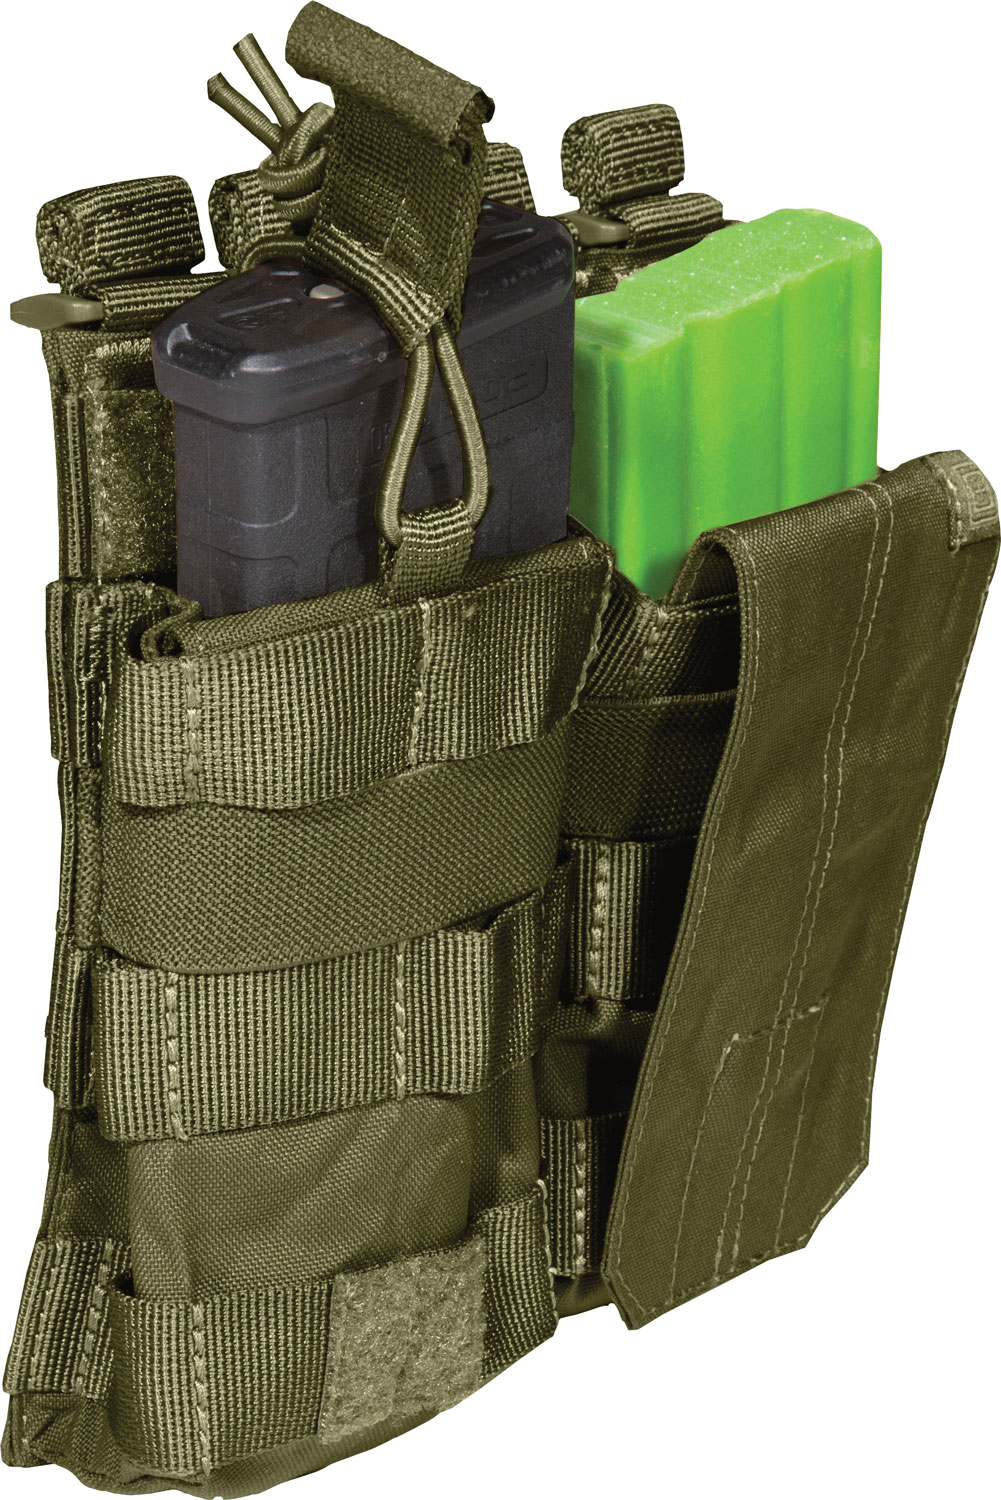 5.11 Tactical AR/G36 Double Bungee/Cover, Tac OD (56157-188)